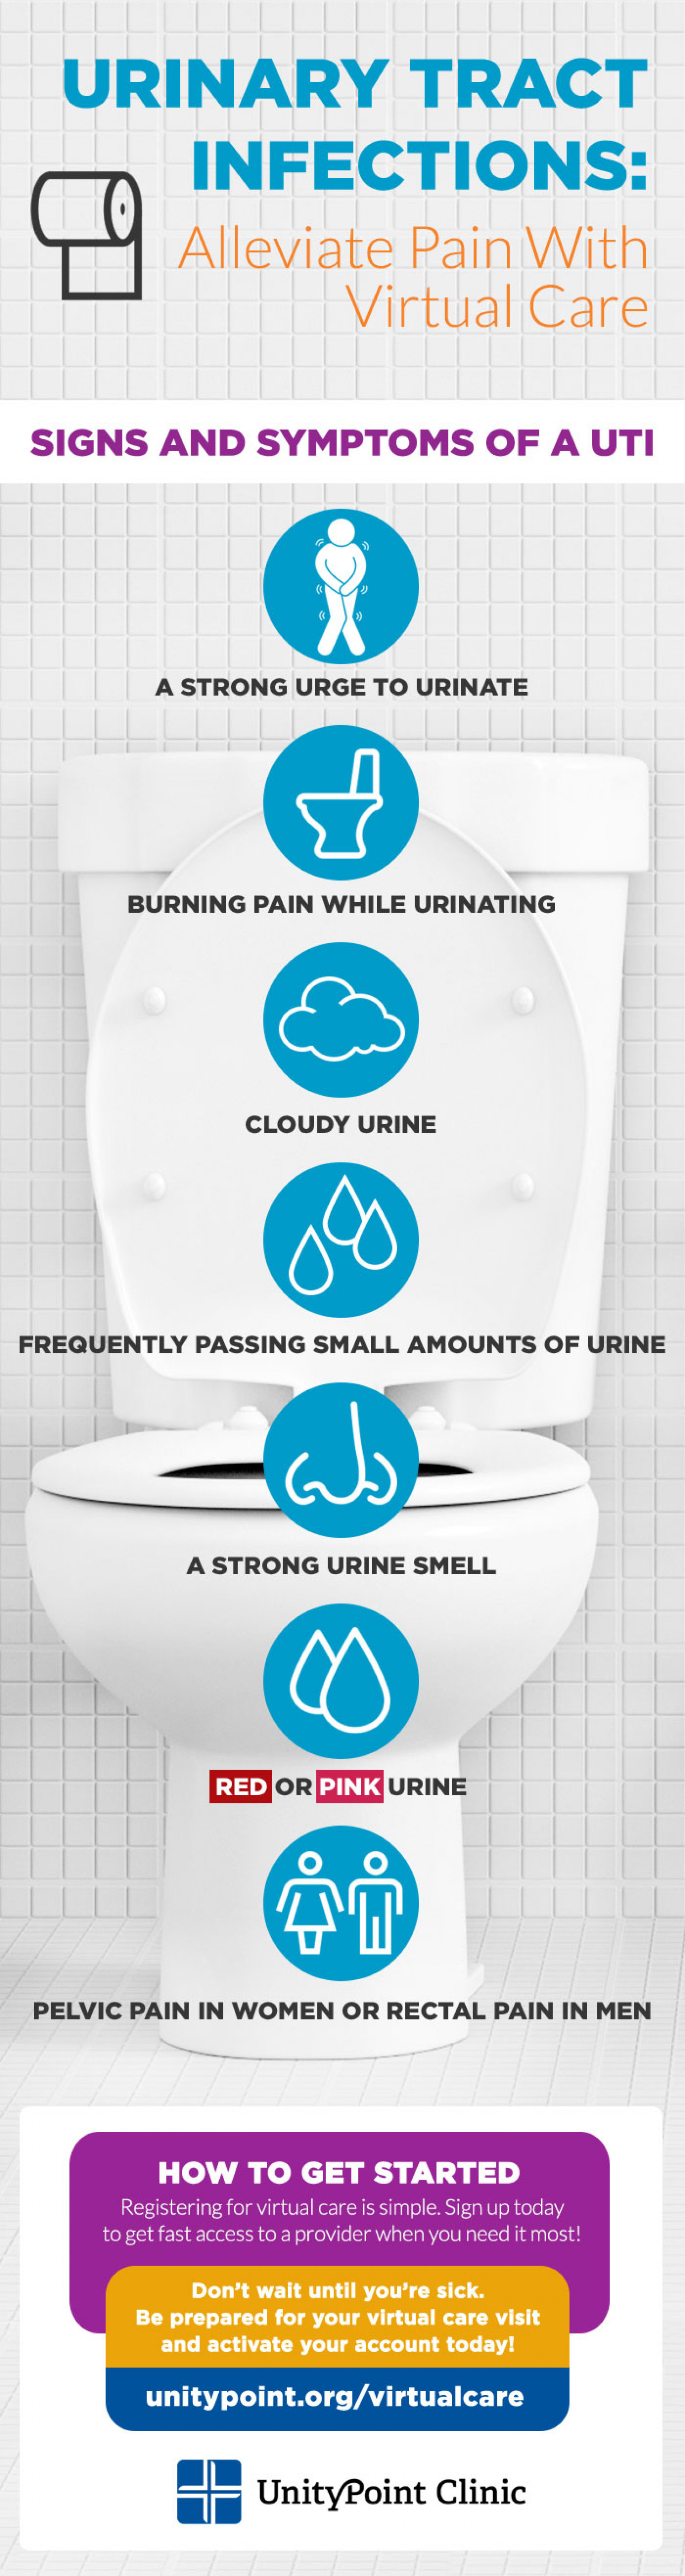 Urinary Tract Infections: Alleviate Pain With Virtual Care Infographic